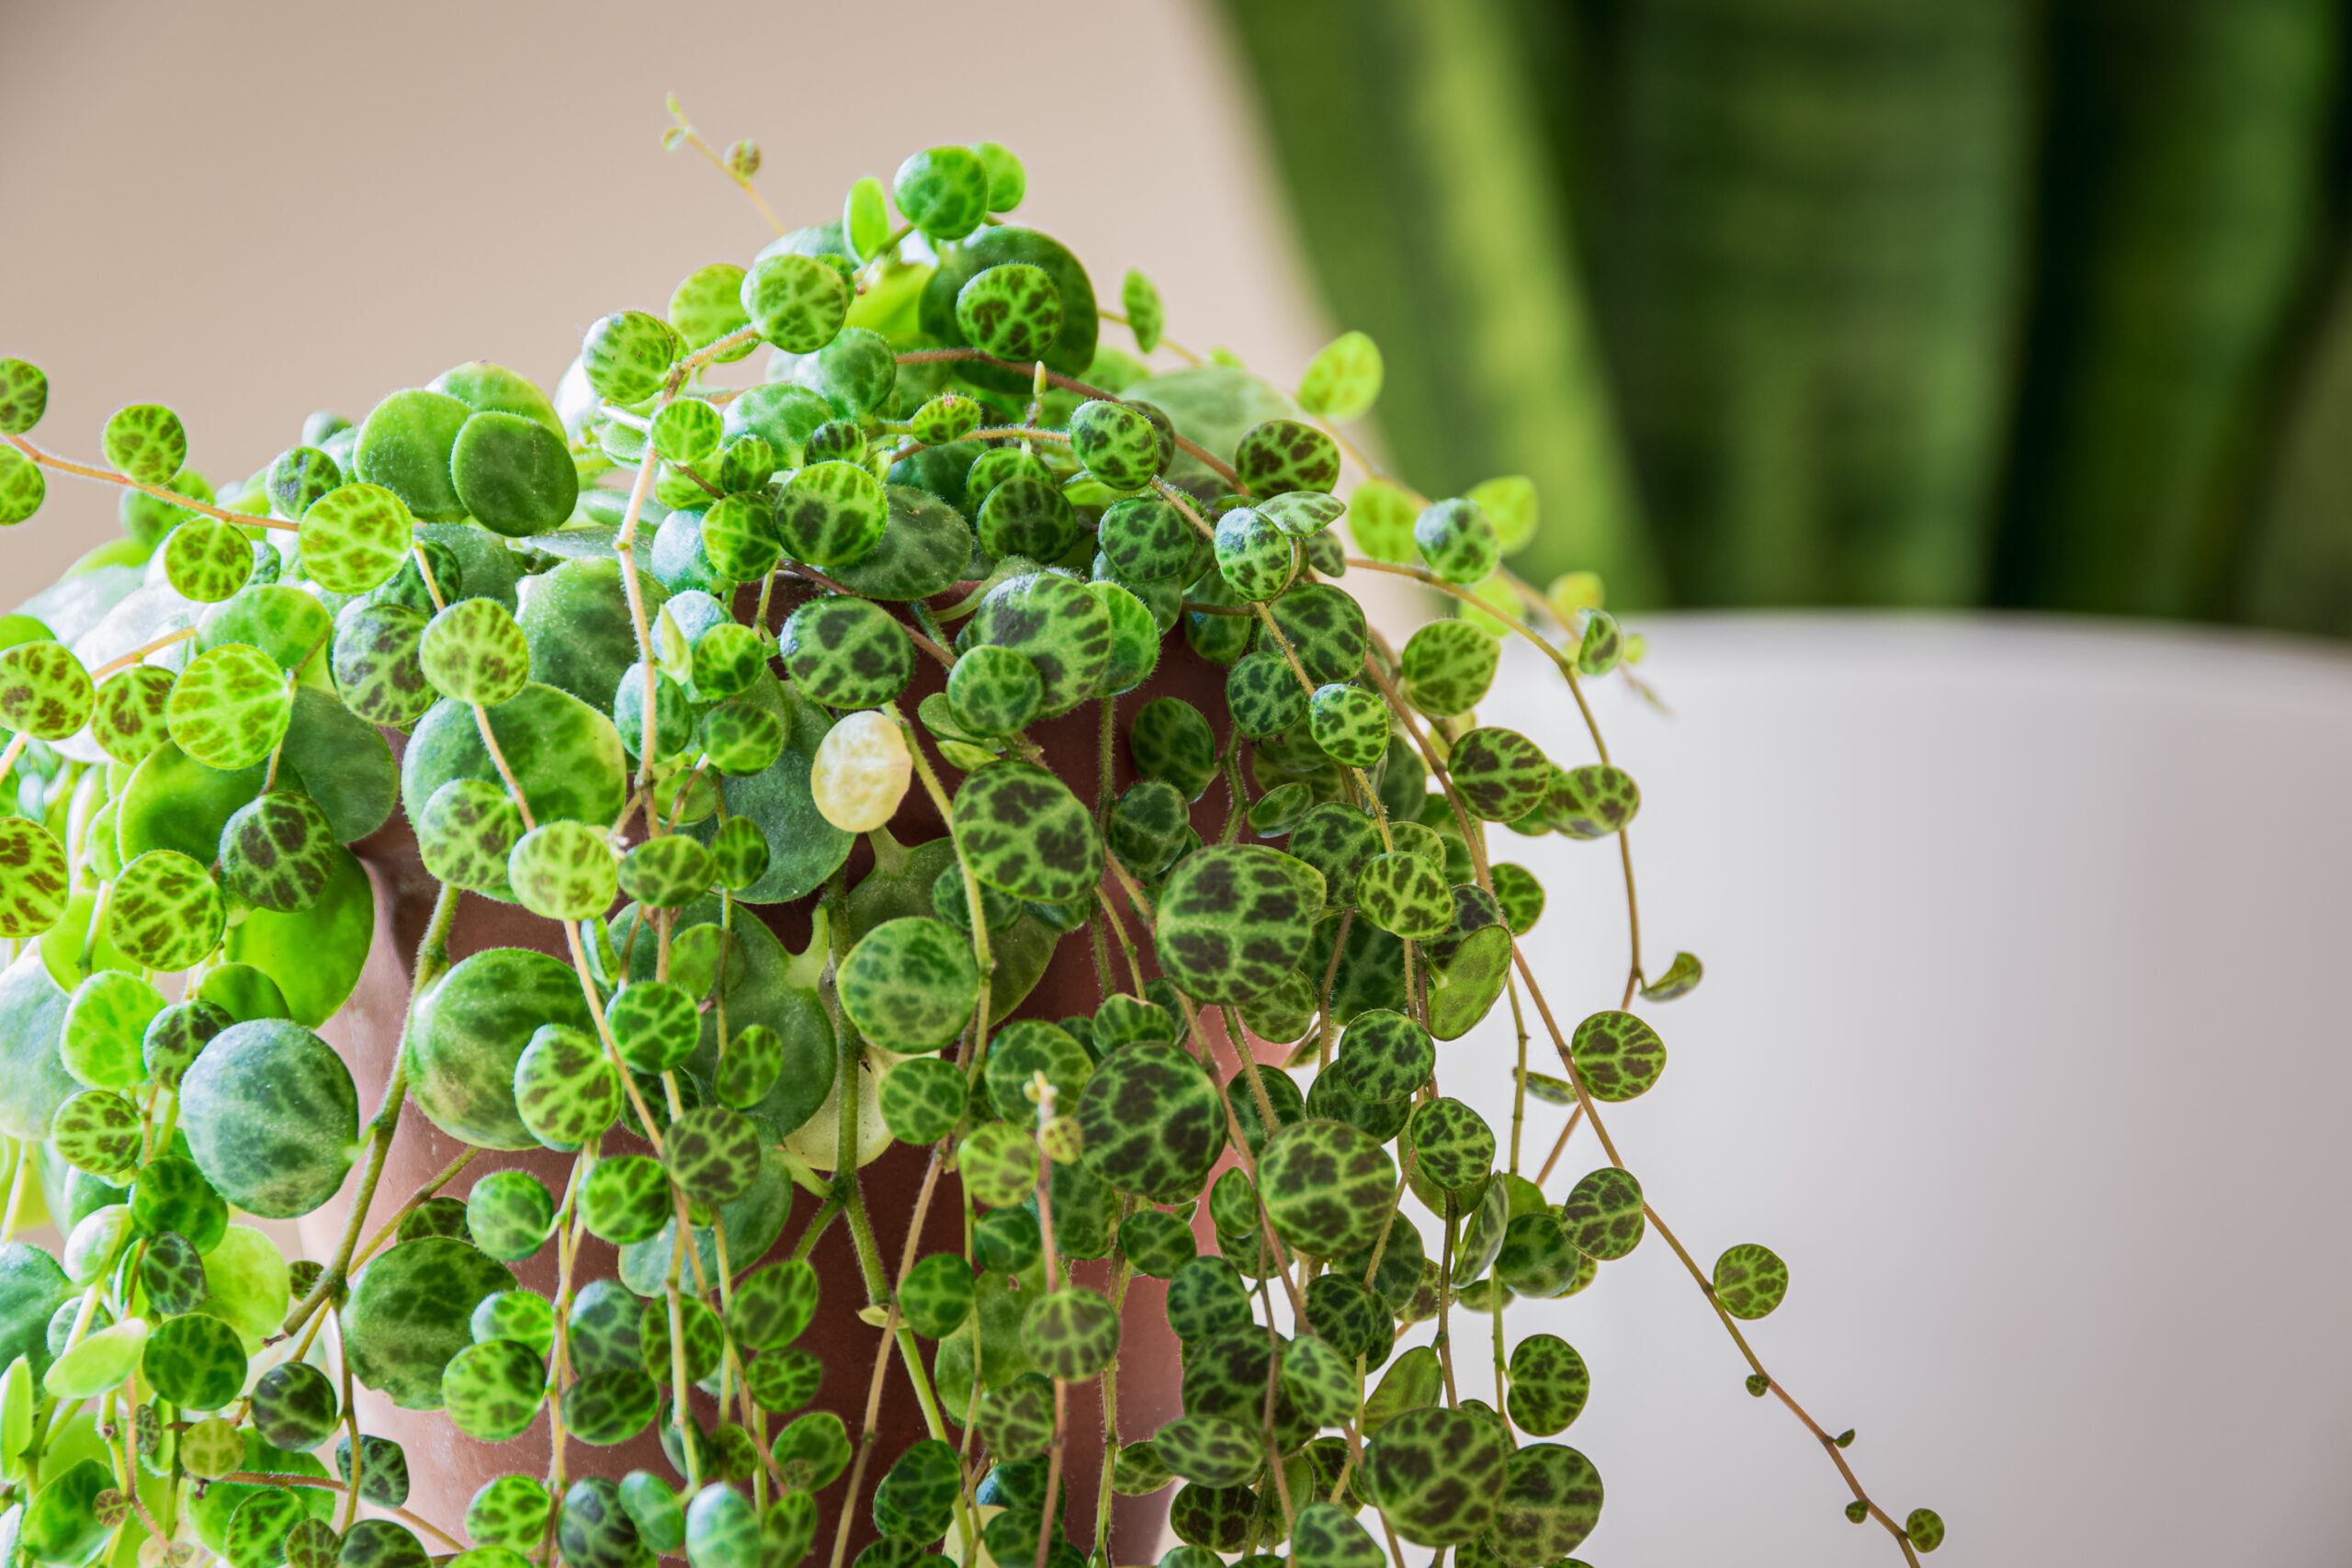 Peperomia prostrata - the scientific name for the String of Turtles plant